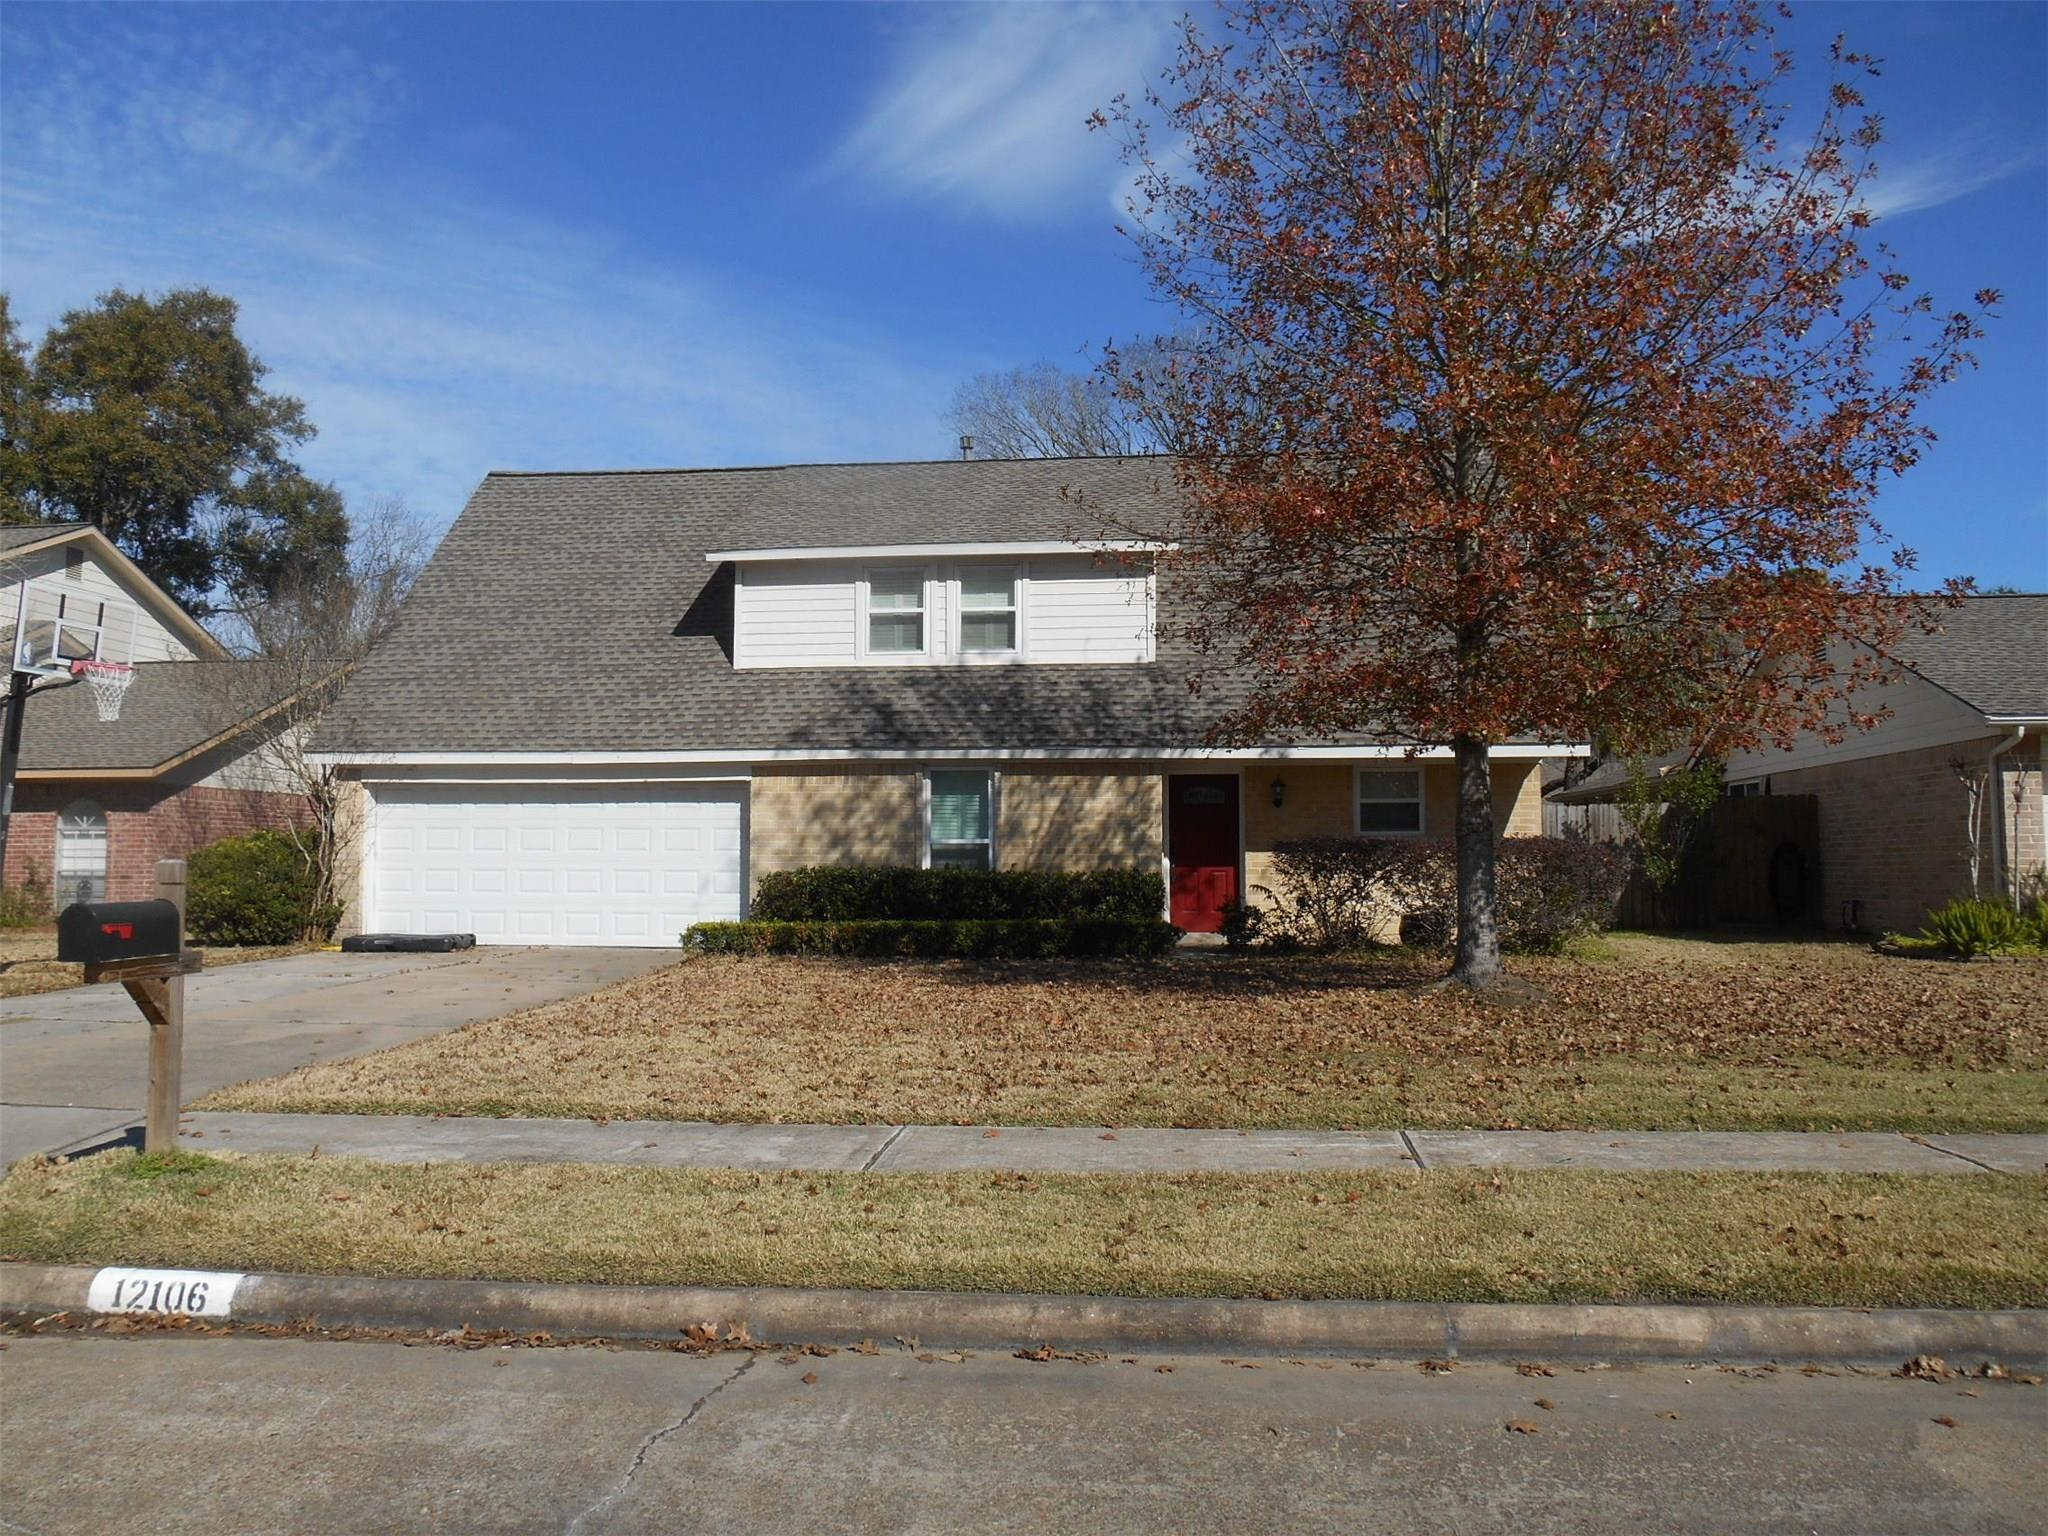 12106 ALSTON Property Photo - Meadows Place, TX real estate listing